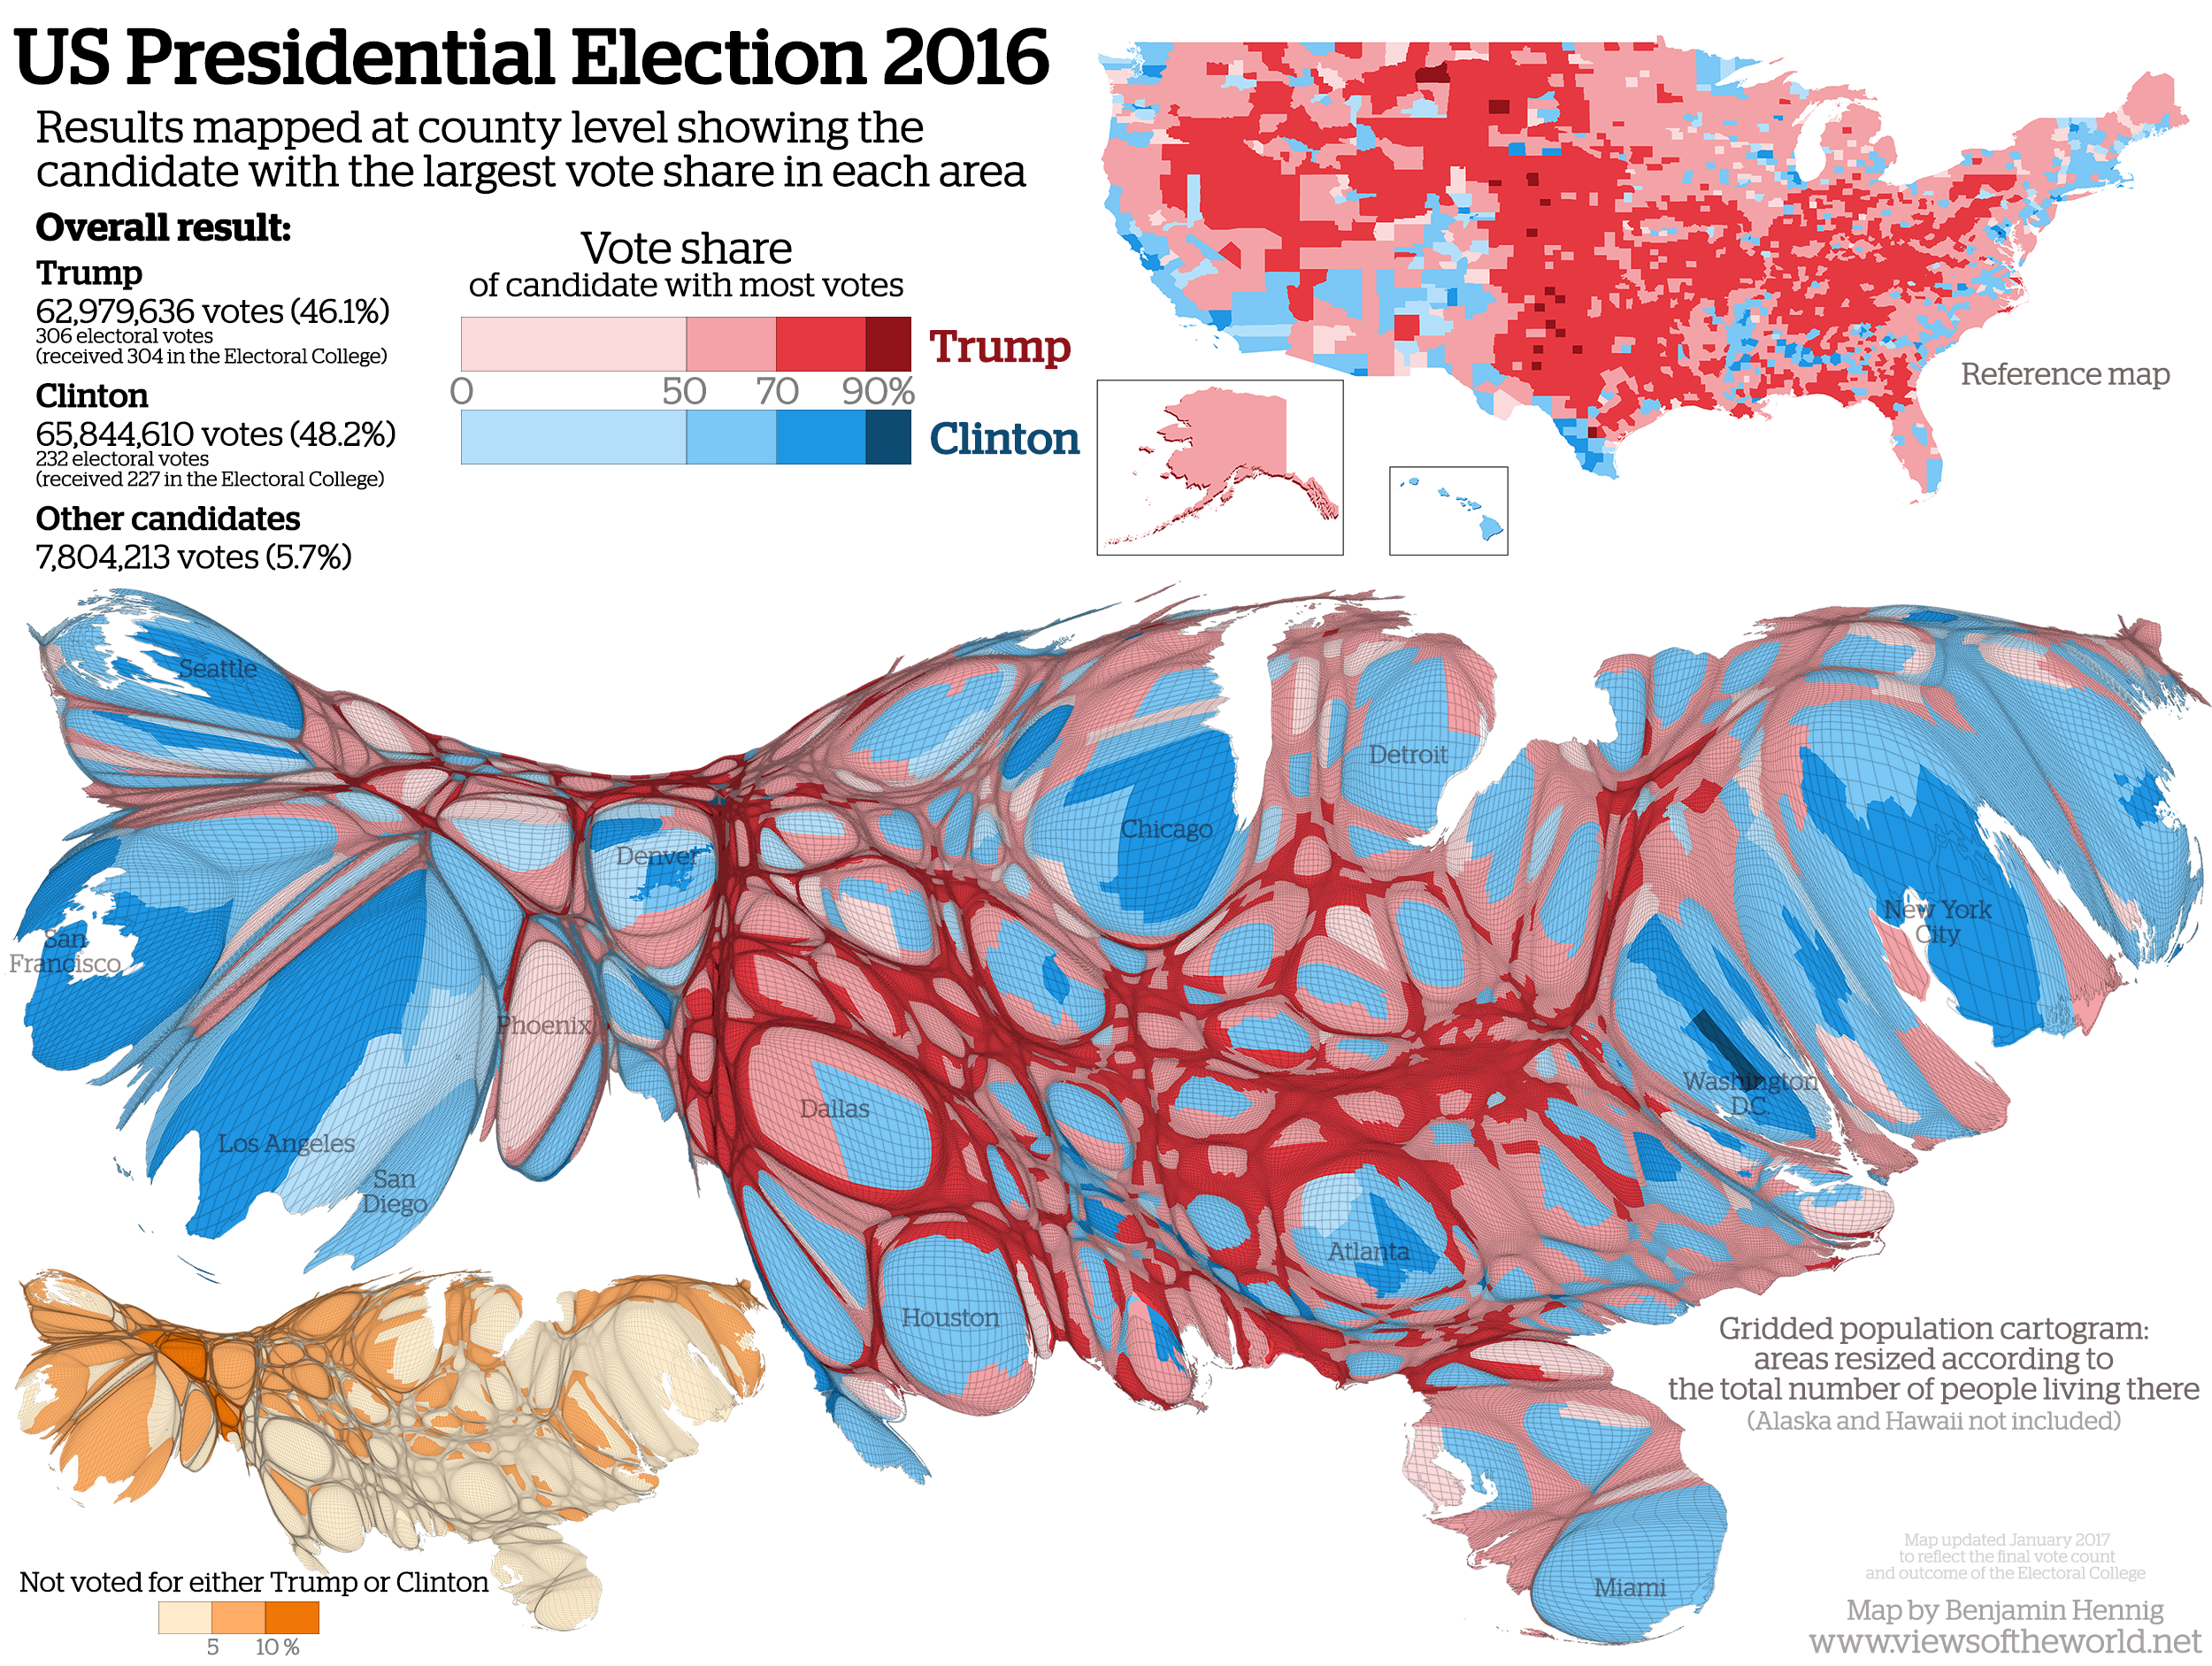 US Presidential Election 2016 - Views of the World